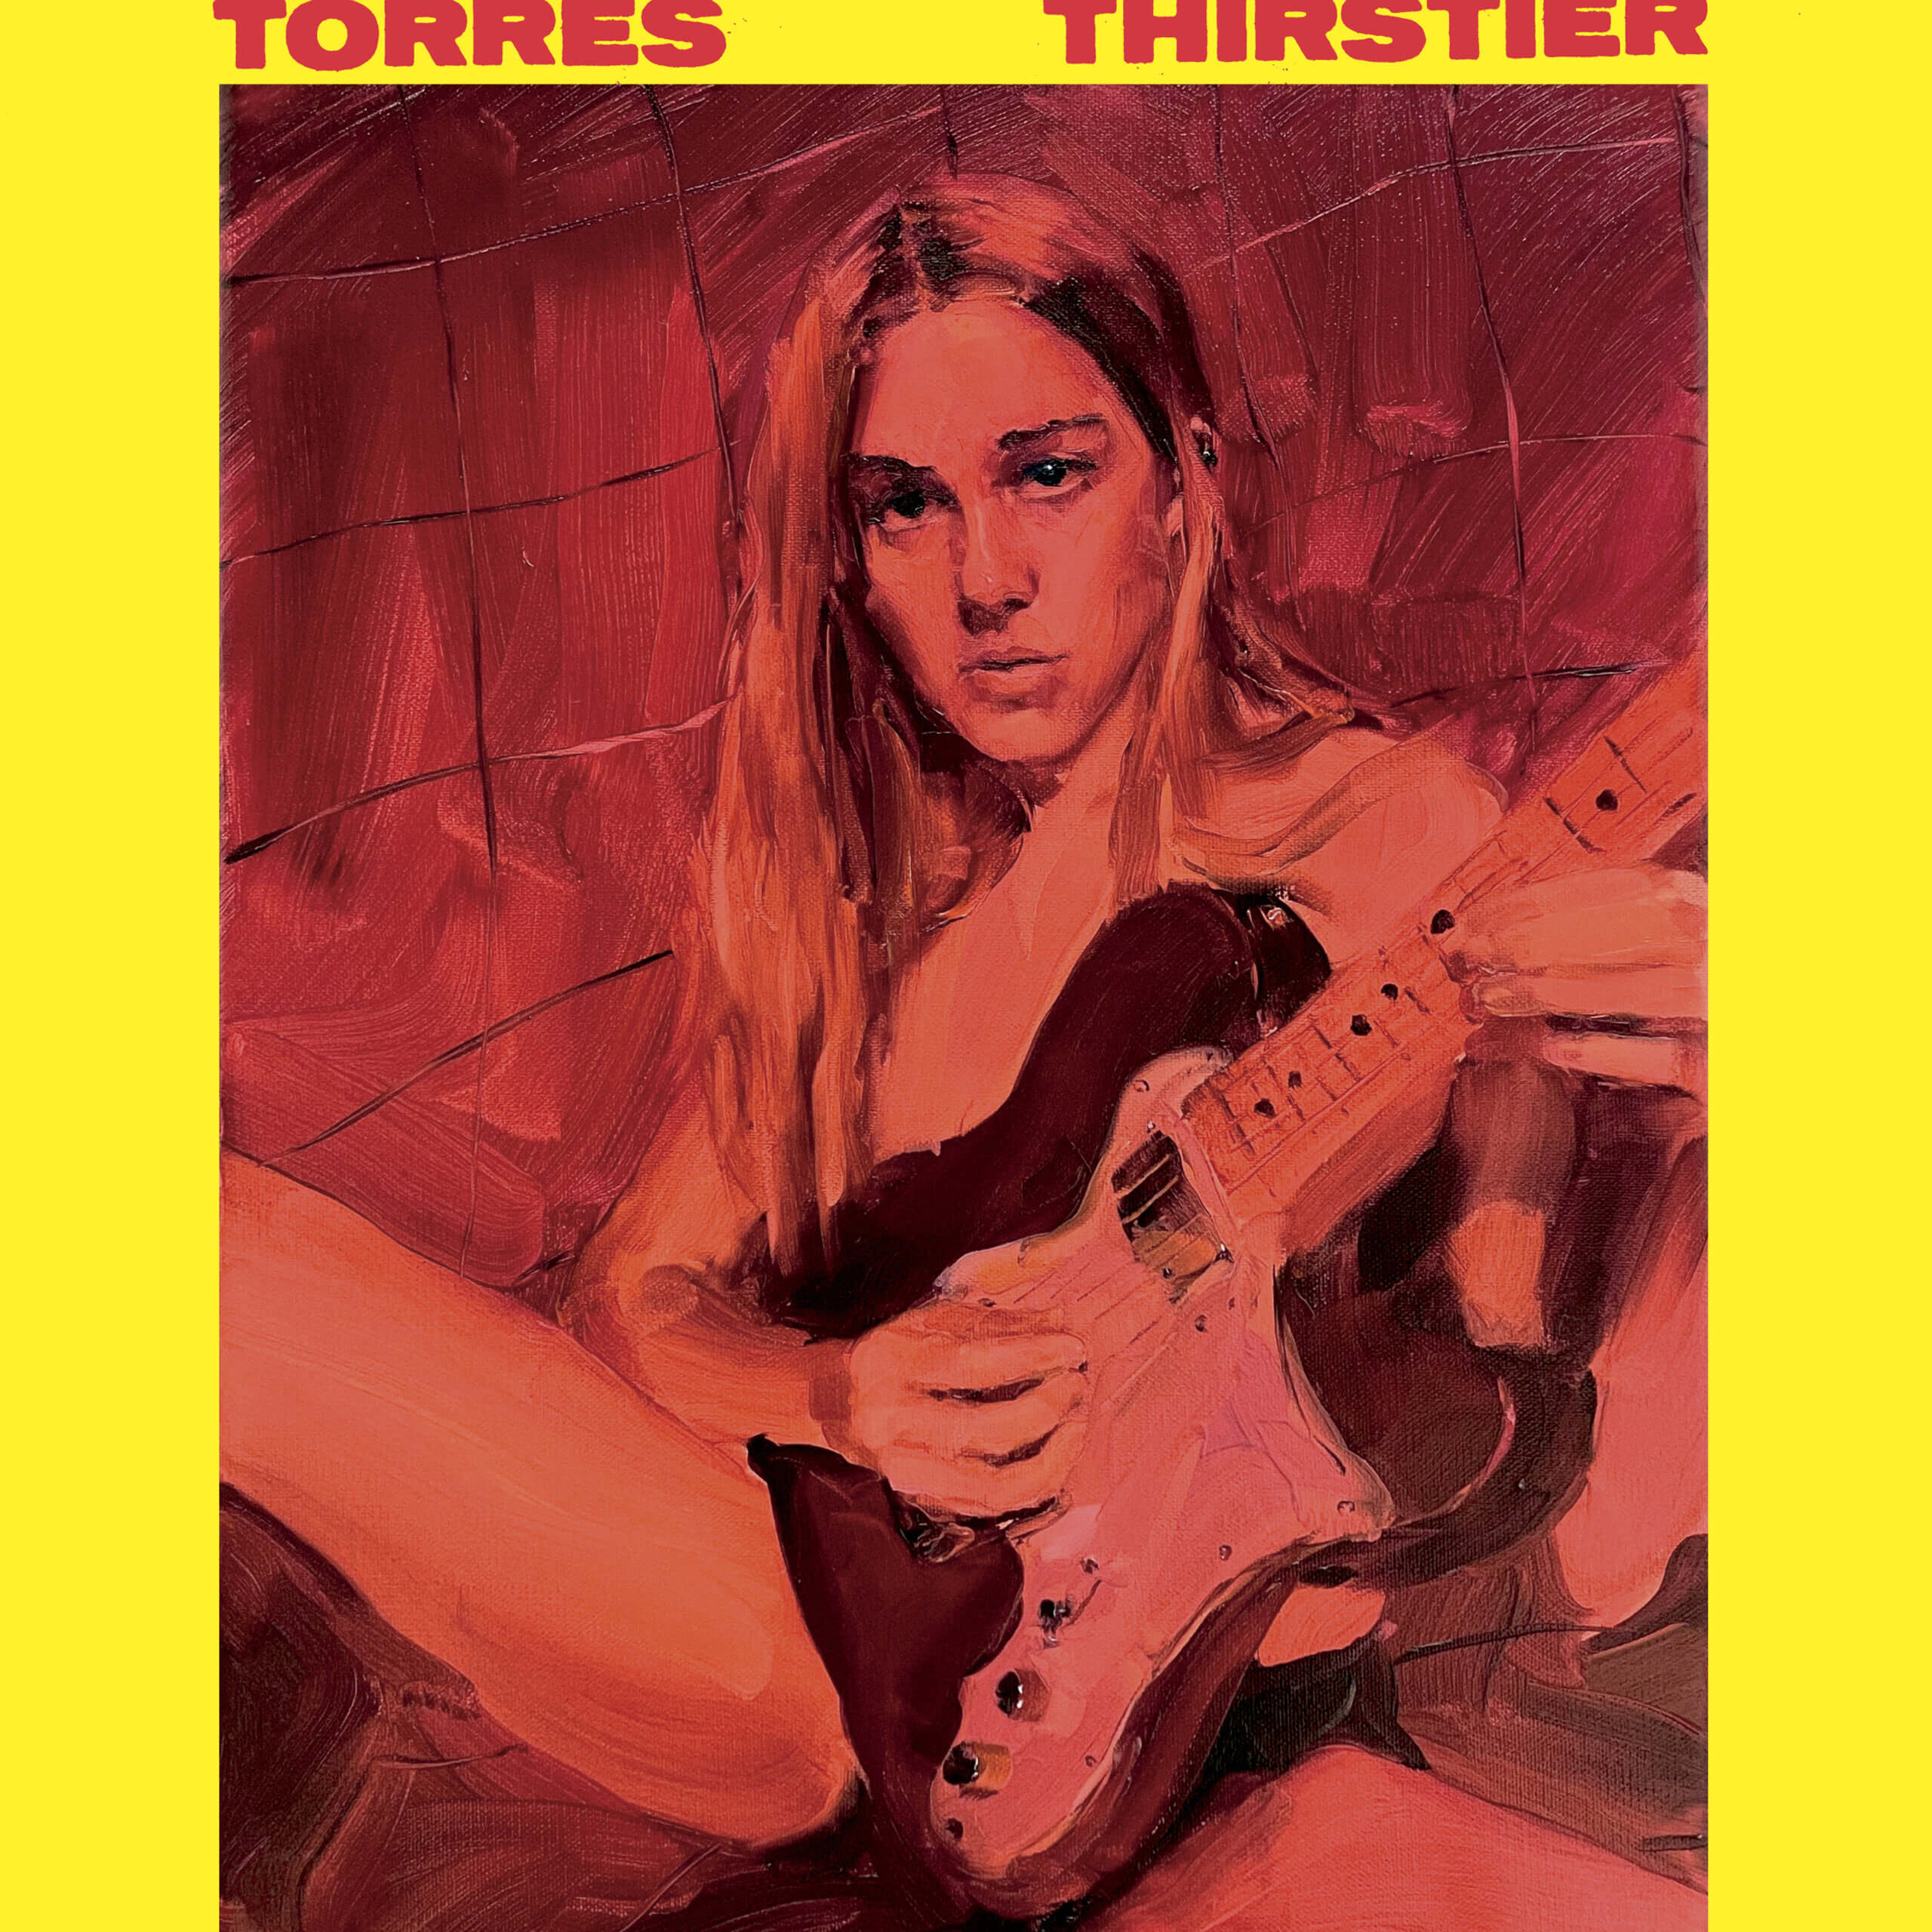 Thirstier by TORRES Album Review by Adam Williams for Northern Transmissions